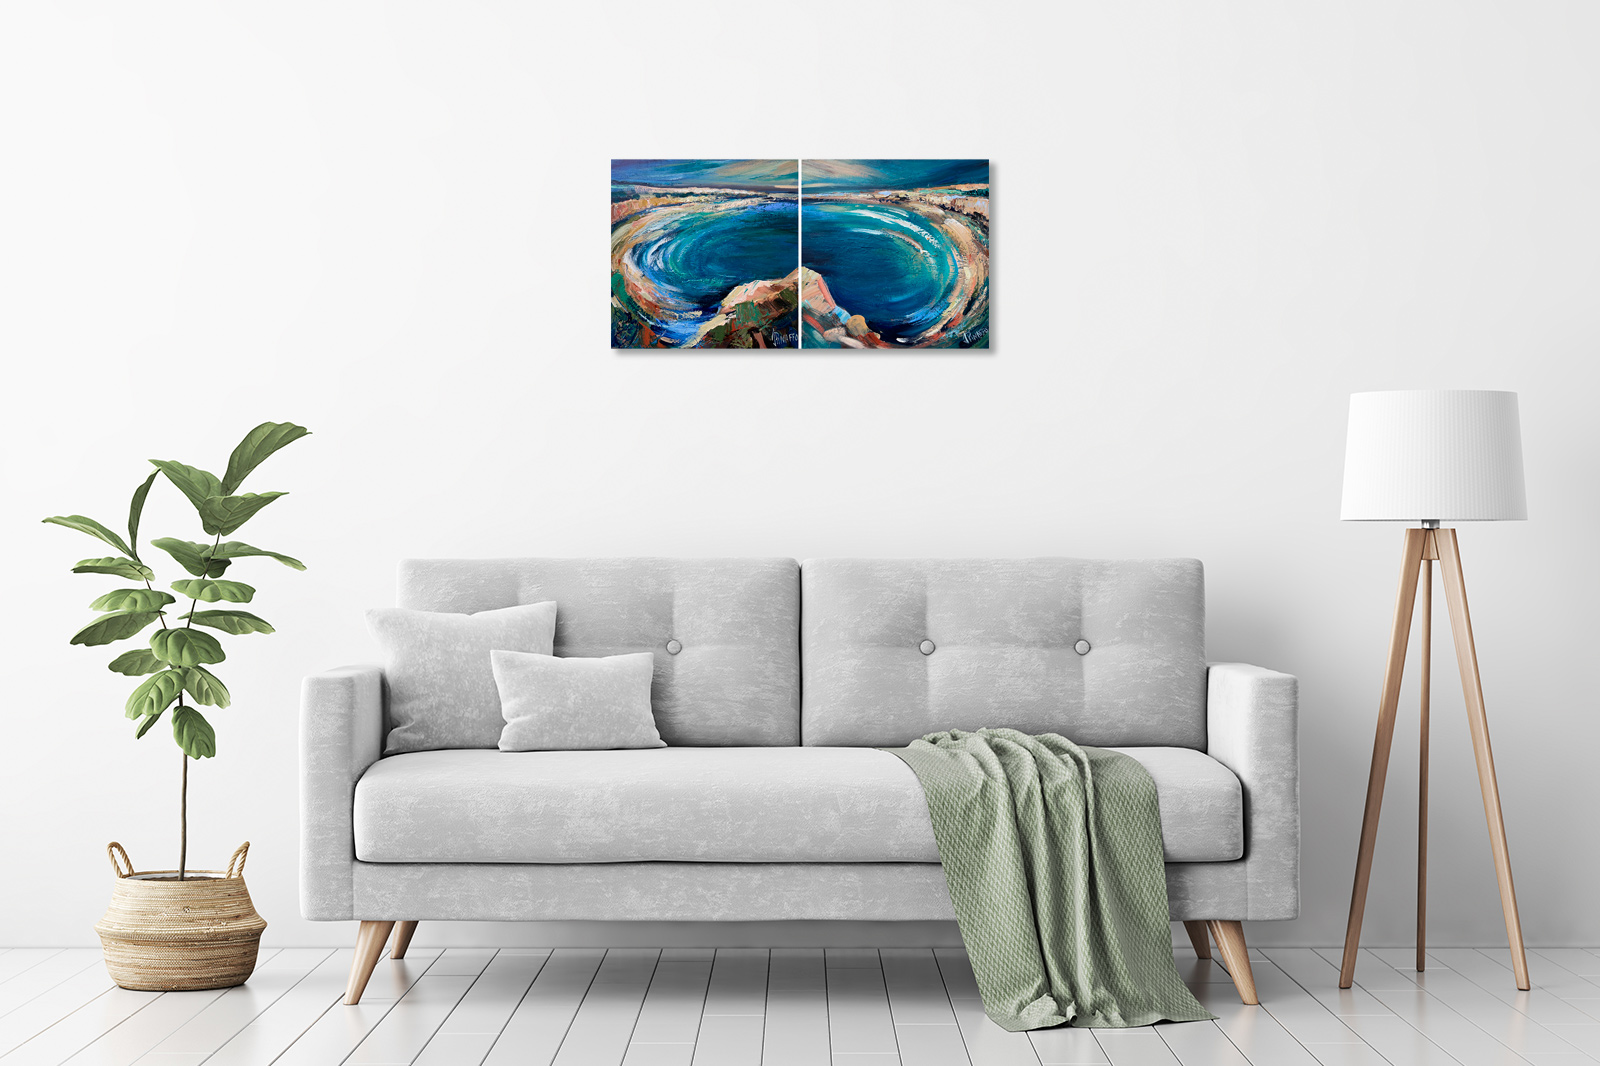 Seascape I and II Diptych in a room